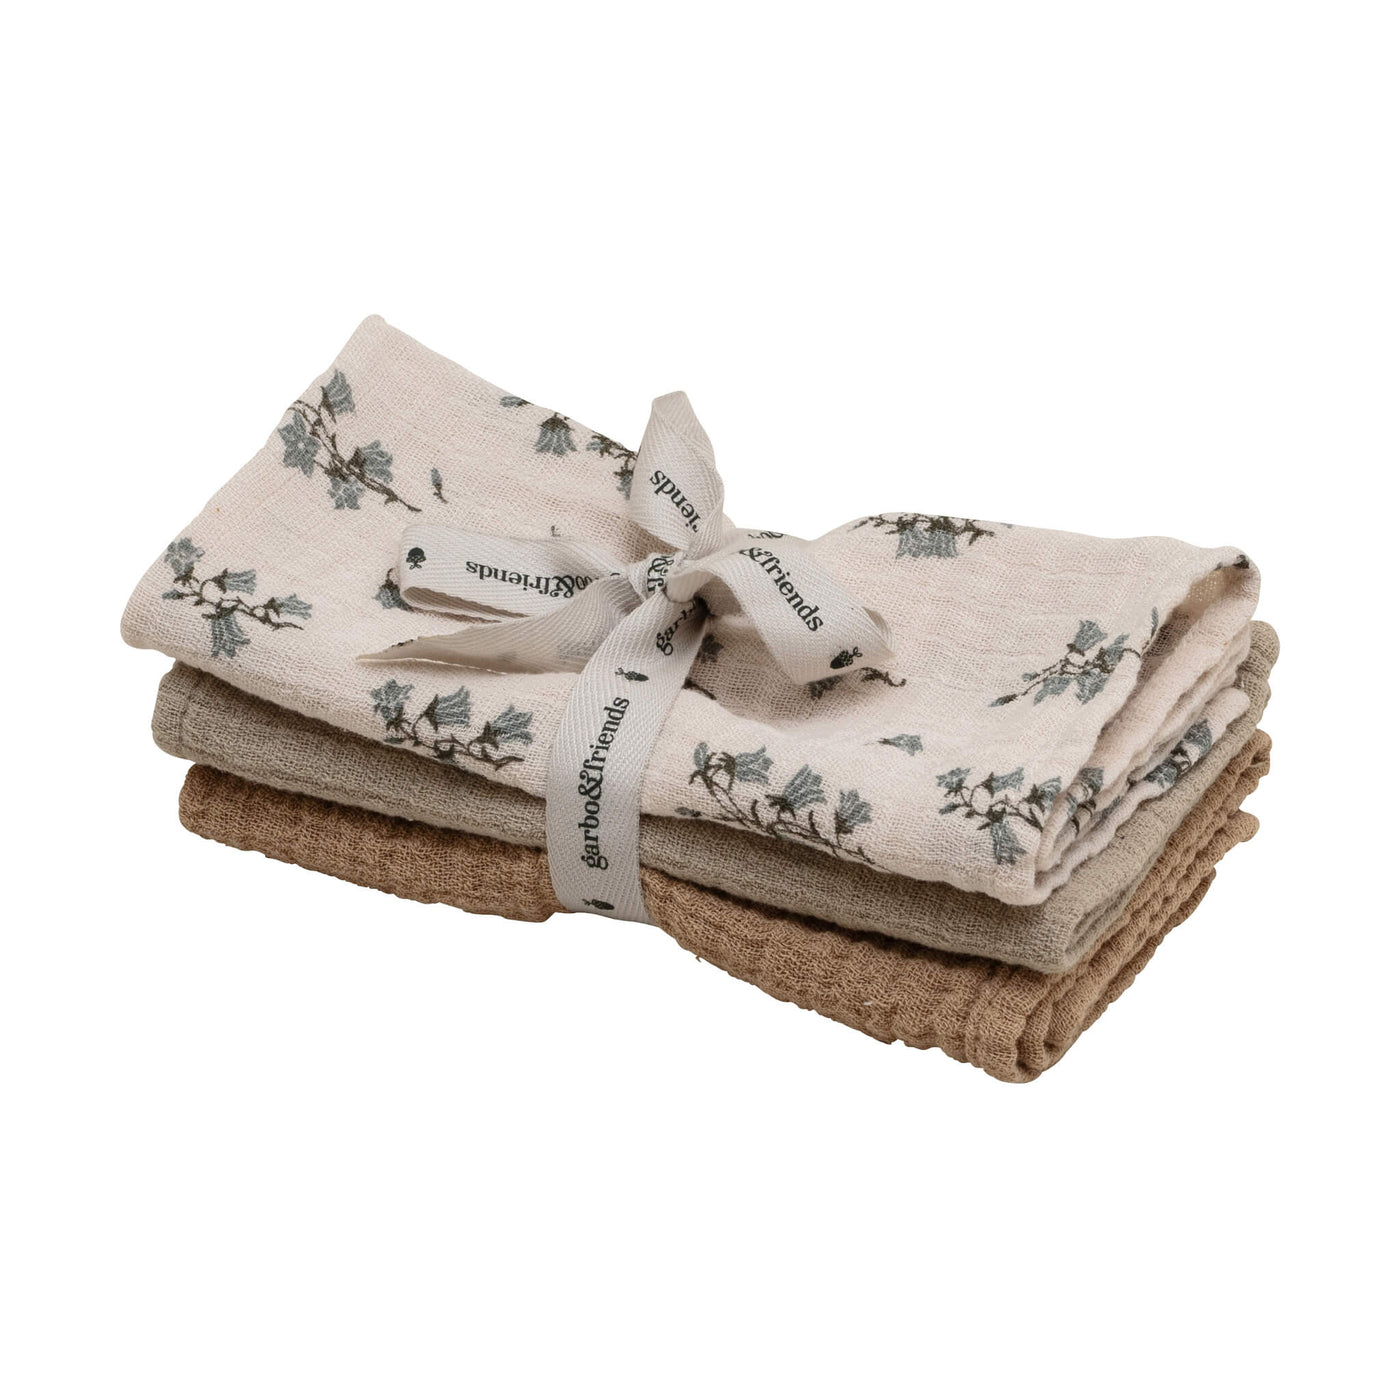 Bluebell Muslin Cloths - Set of 3